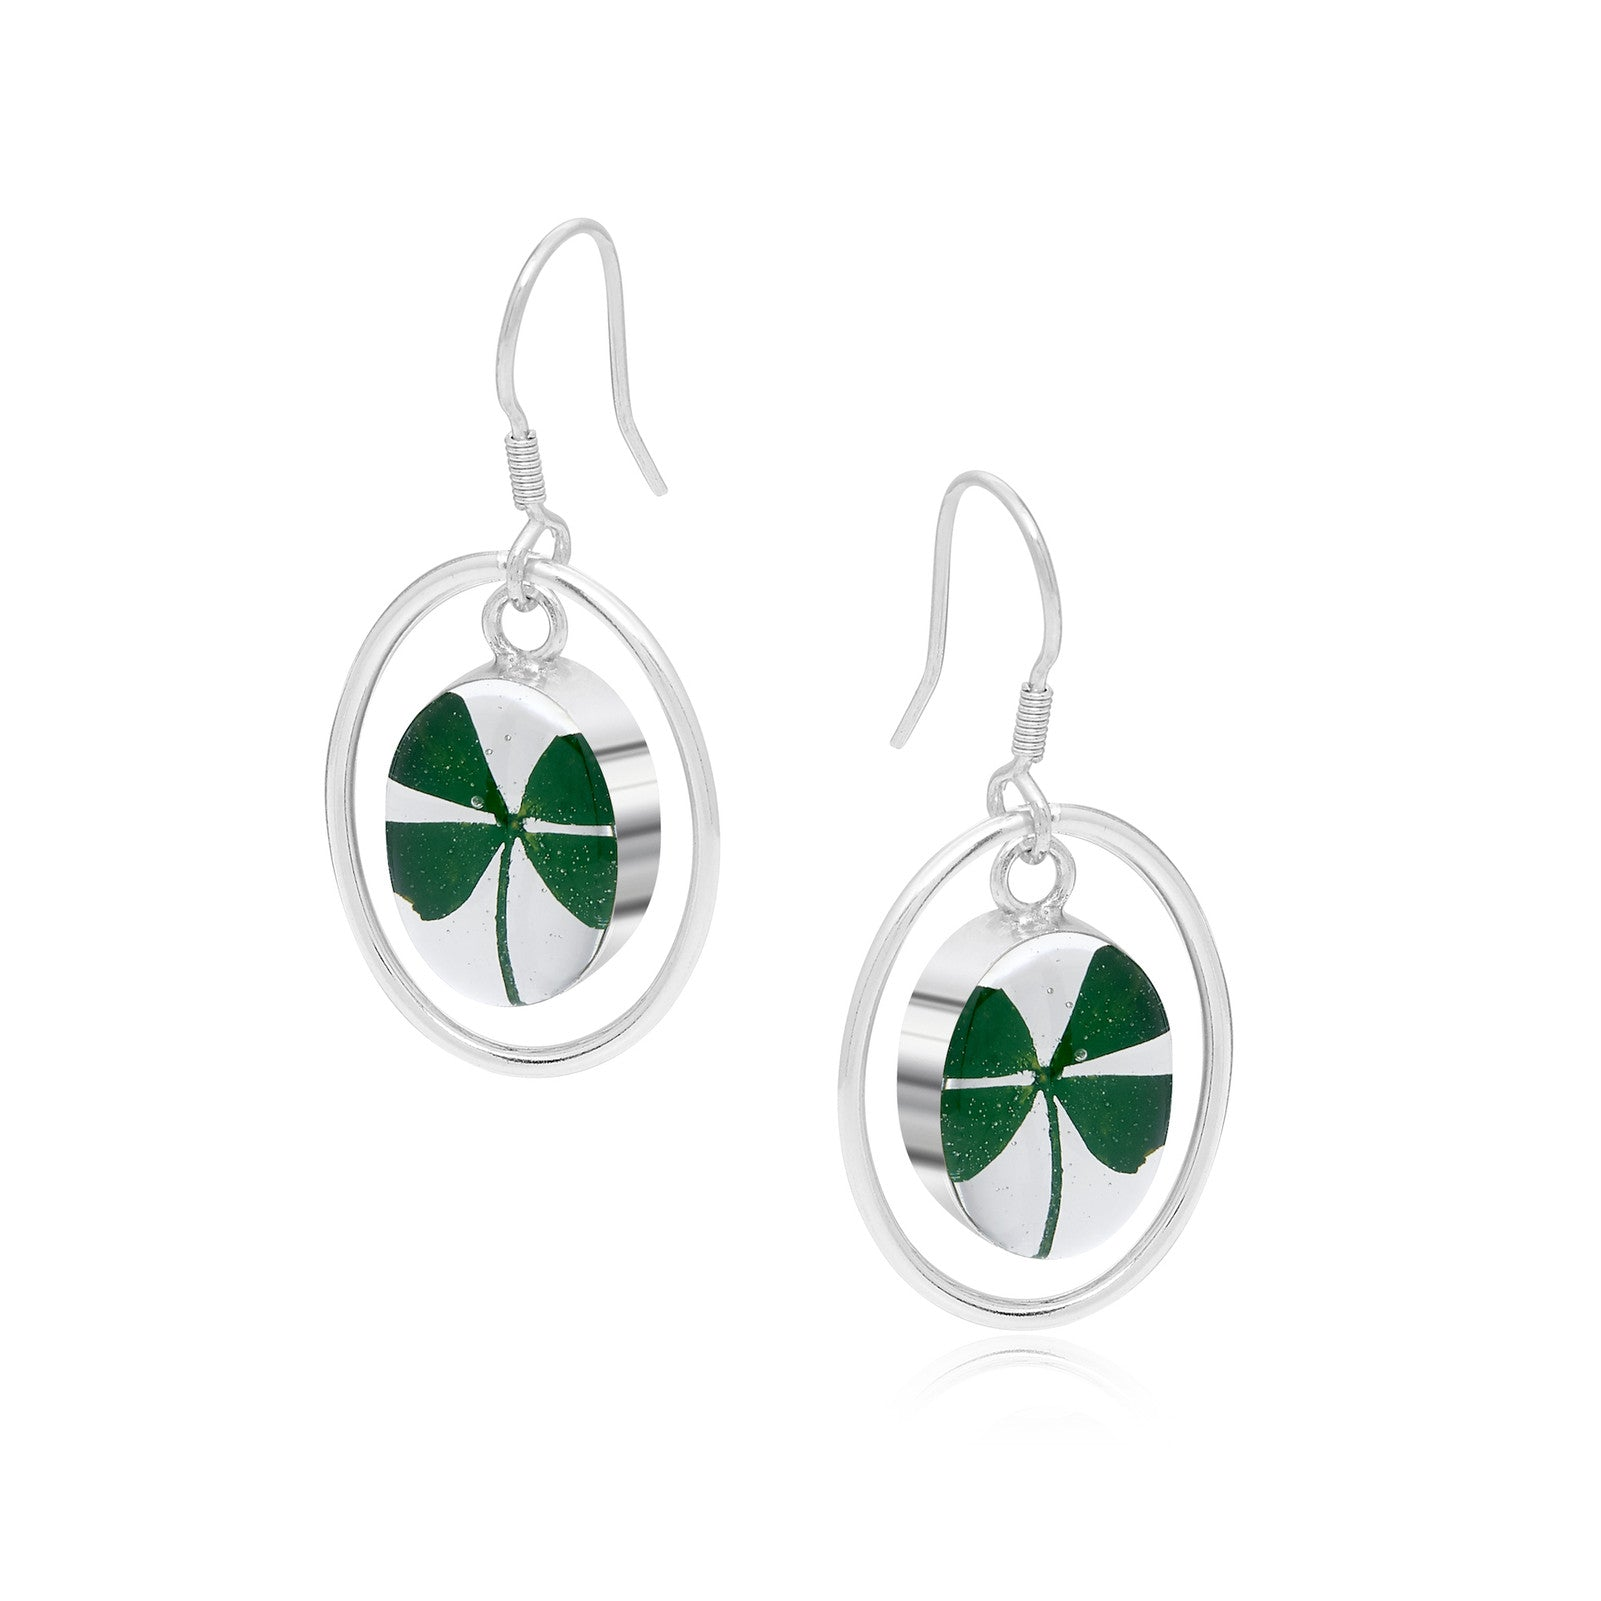 Silver Earrings - Clover - with Silver Oval Surround